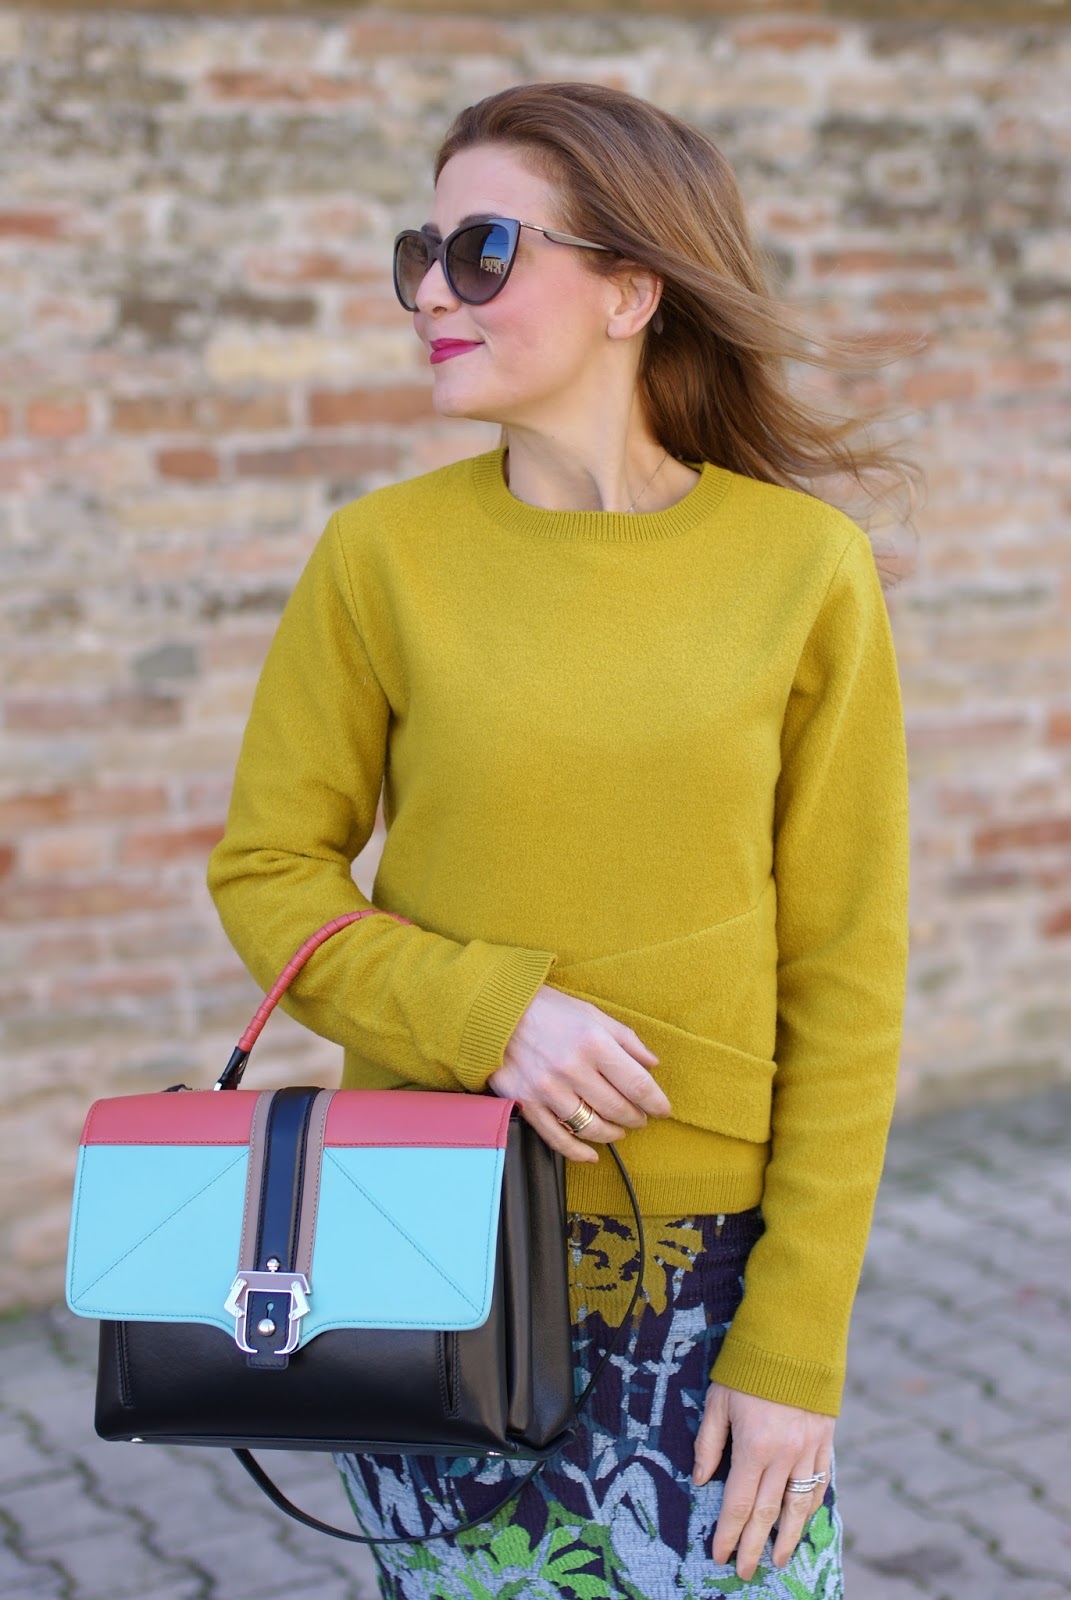 COS yellow sweater and floral midi pencil skirt on Fashion and Cookies fashion blog, fashion blogger style